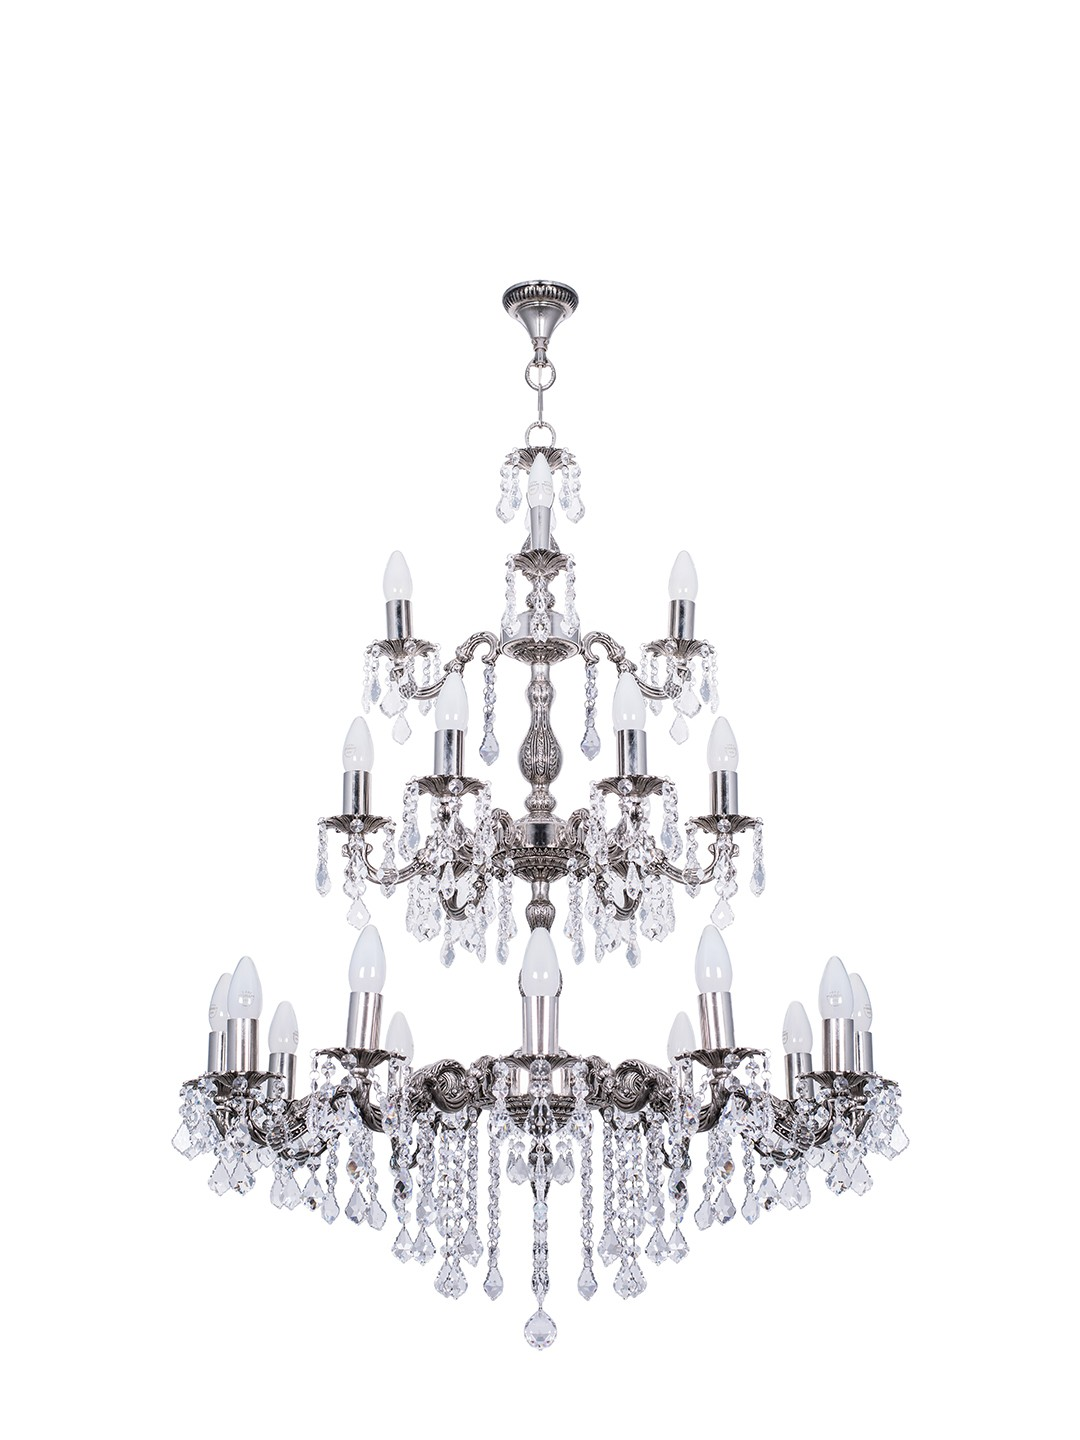 Dainty English Silver Antique Crystal 3 Tier 21 Light Chandelier